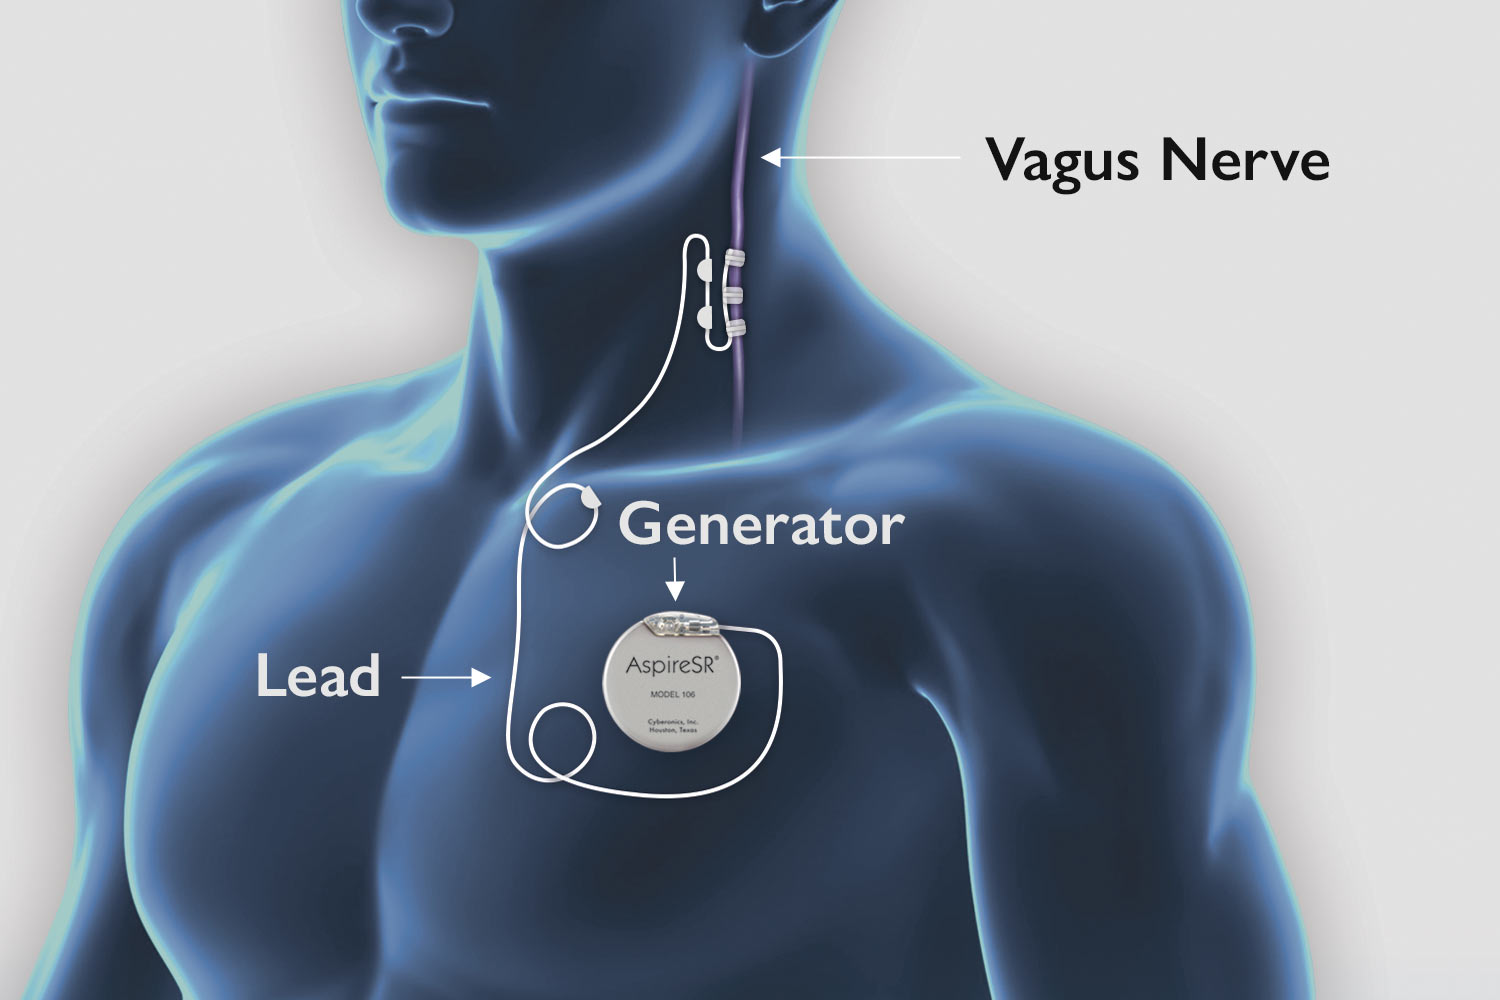 Diagram showing placement of the VNS generator in a persons chest